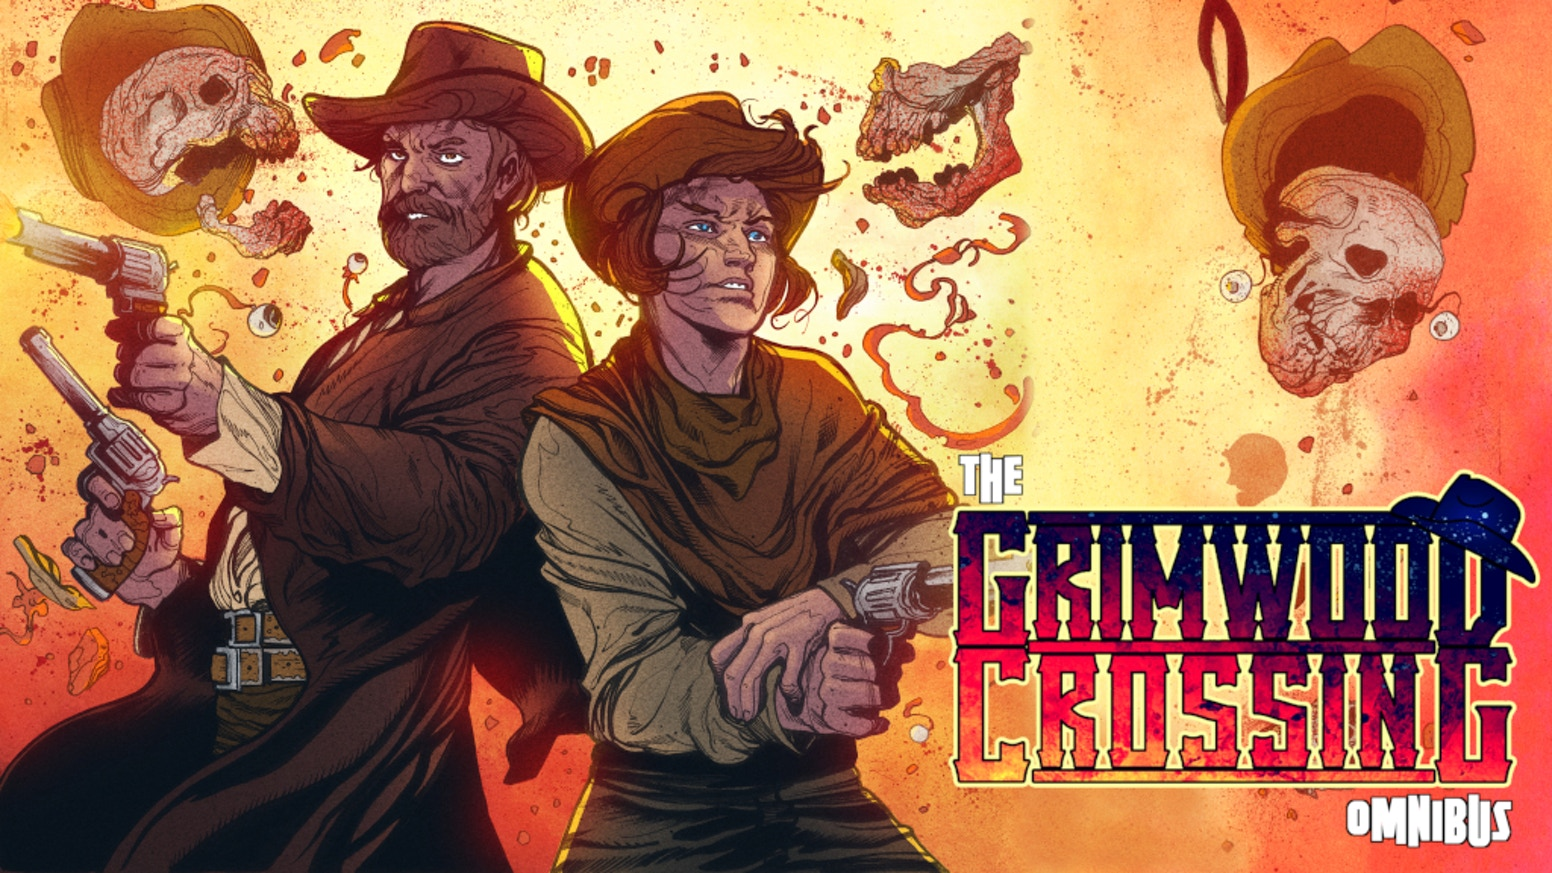 A supernatural western comic about gun-slingin' Monster Hunters. All of Grimwood Crossing + new stories collected in a 200-page book.